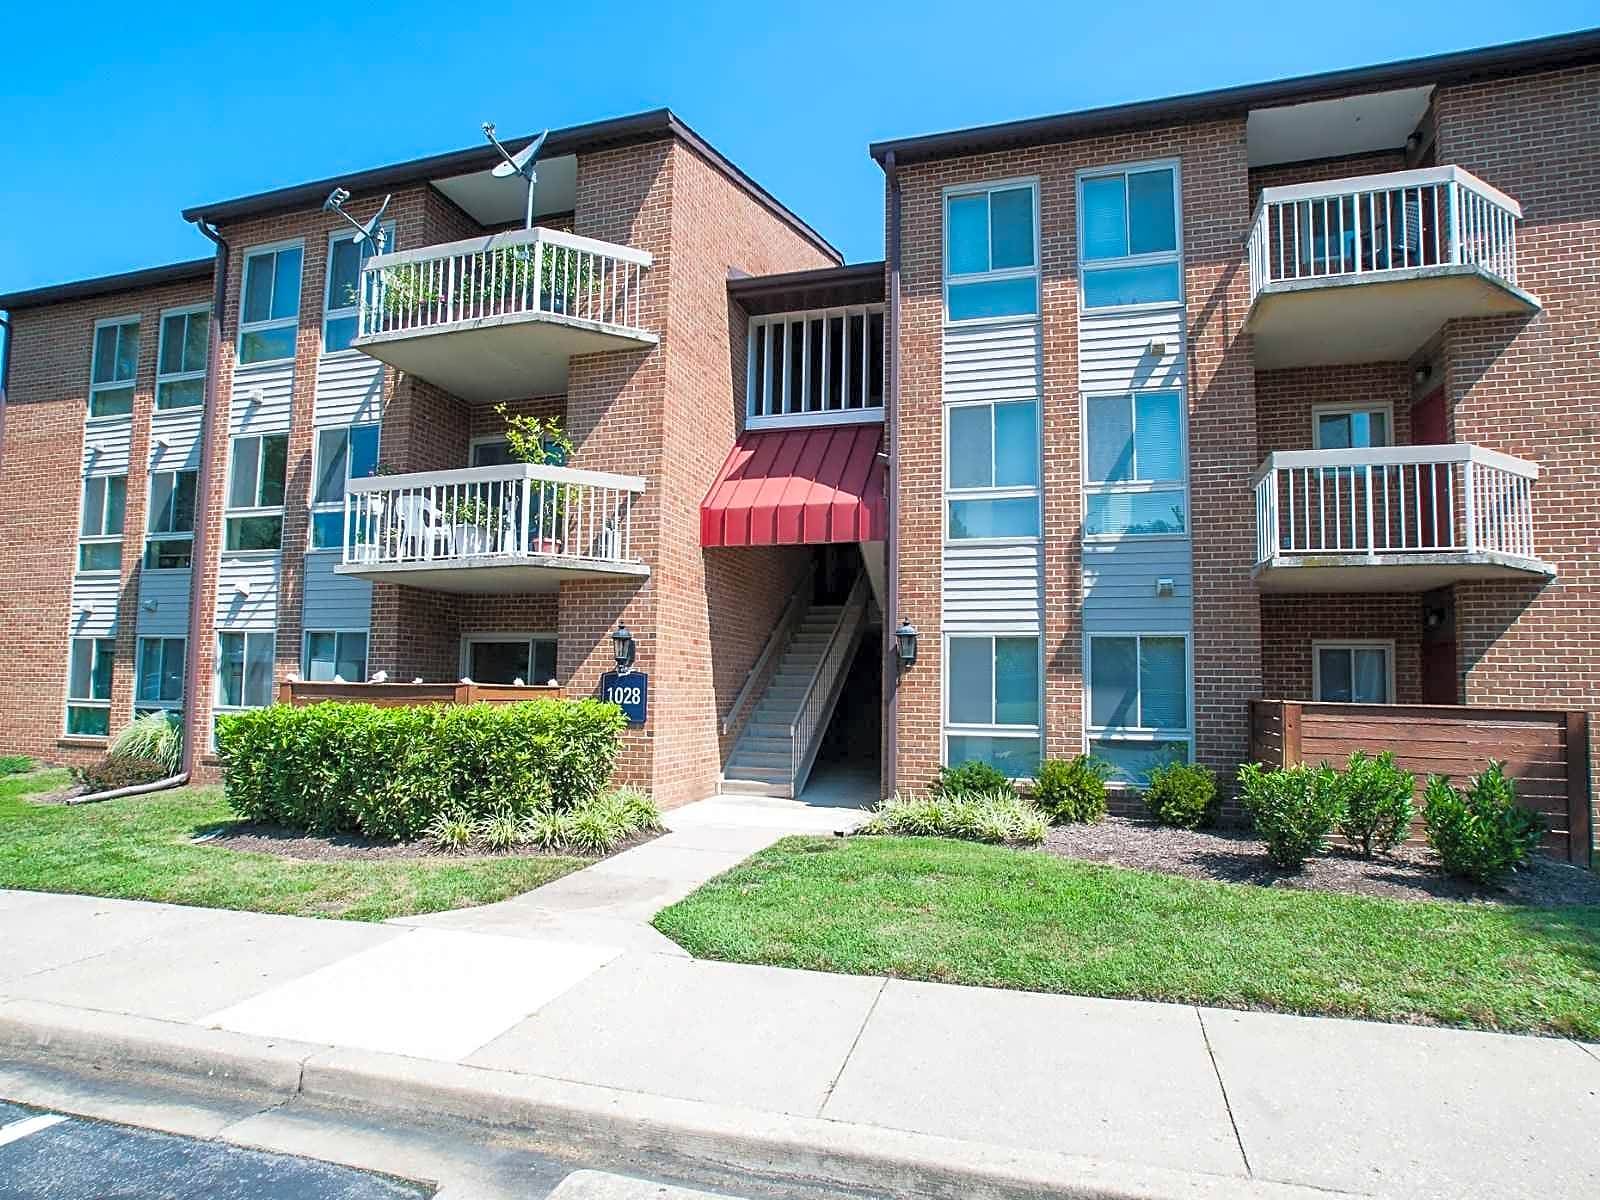 1 Bedroom Apartments In Md All Utilities Included Home Design